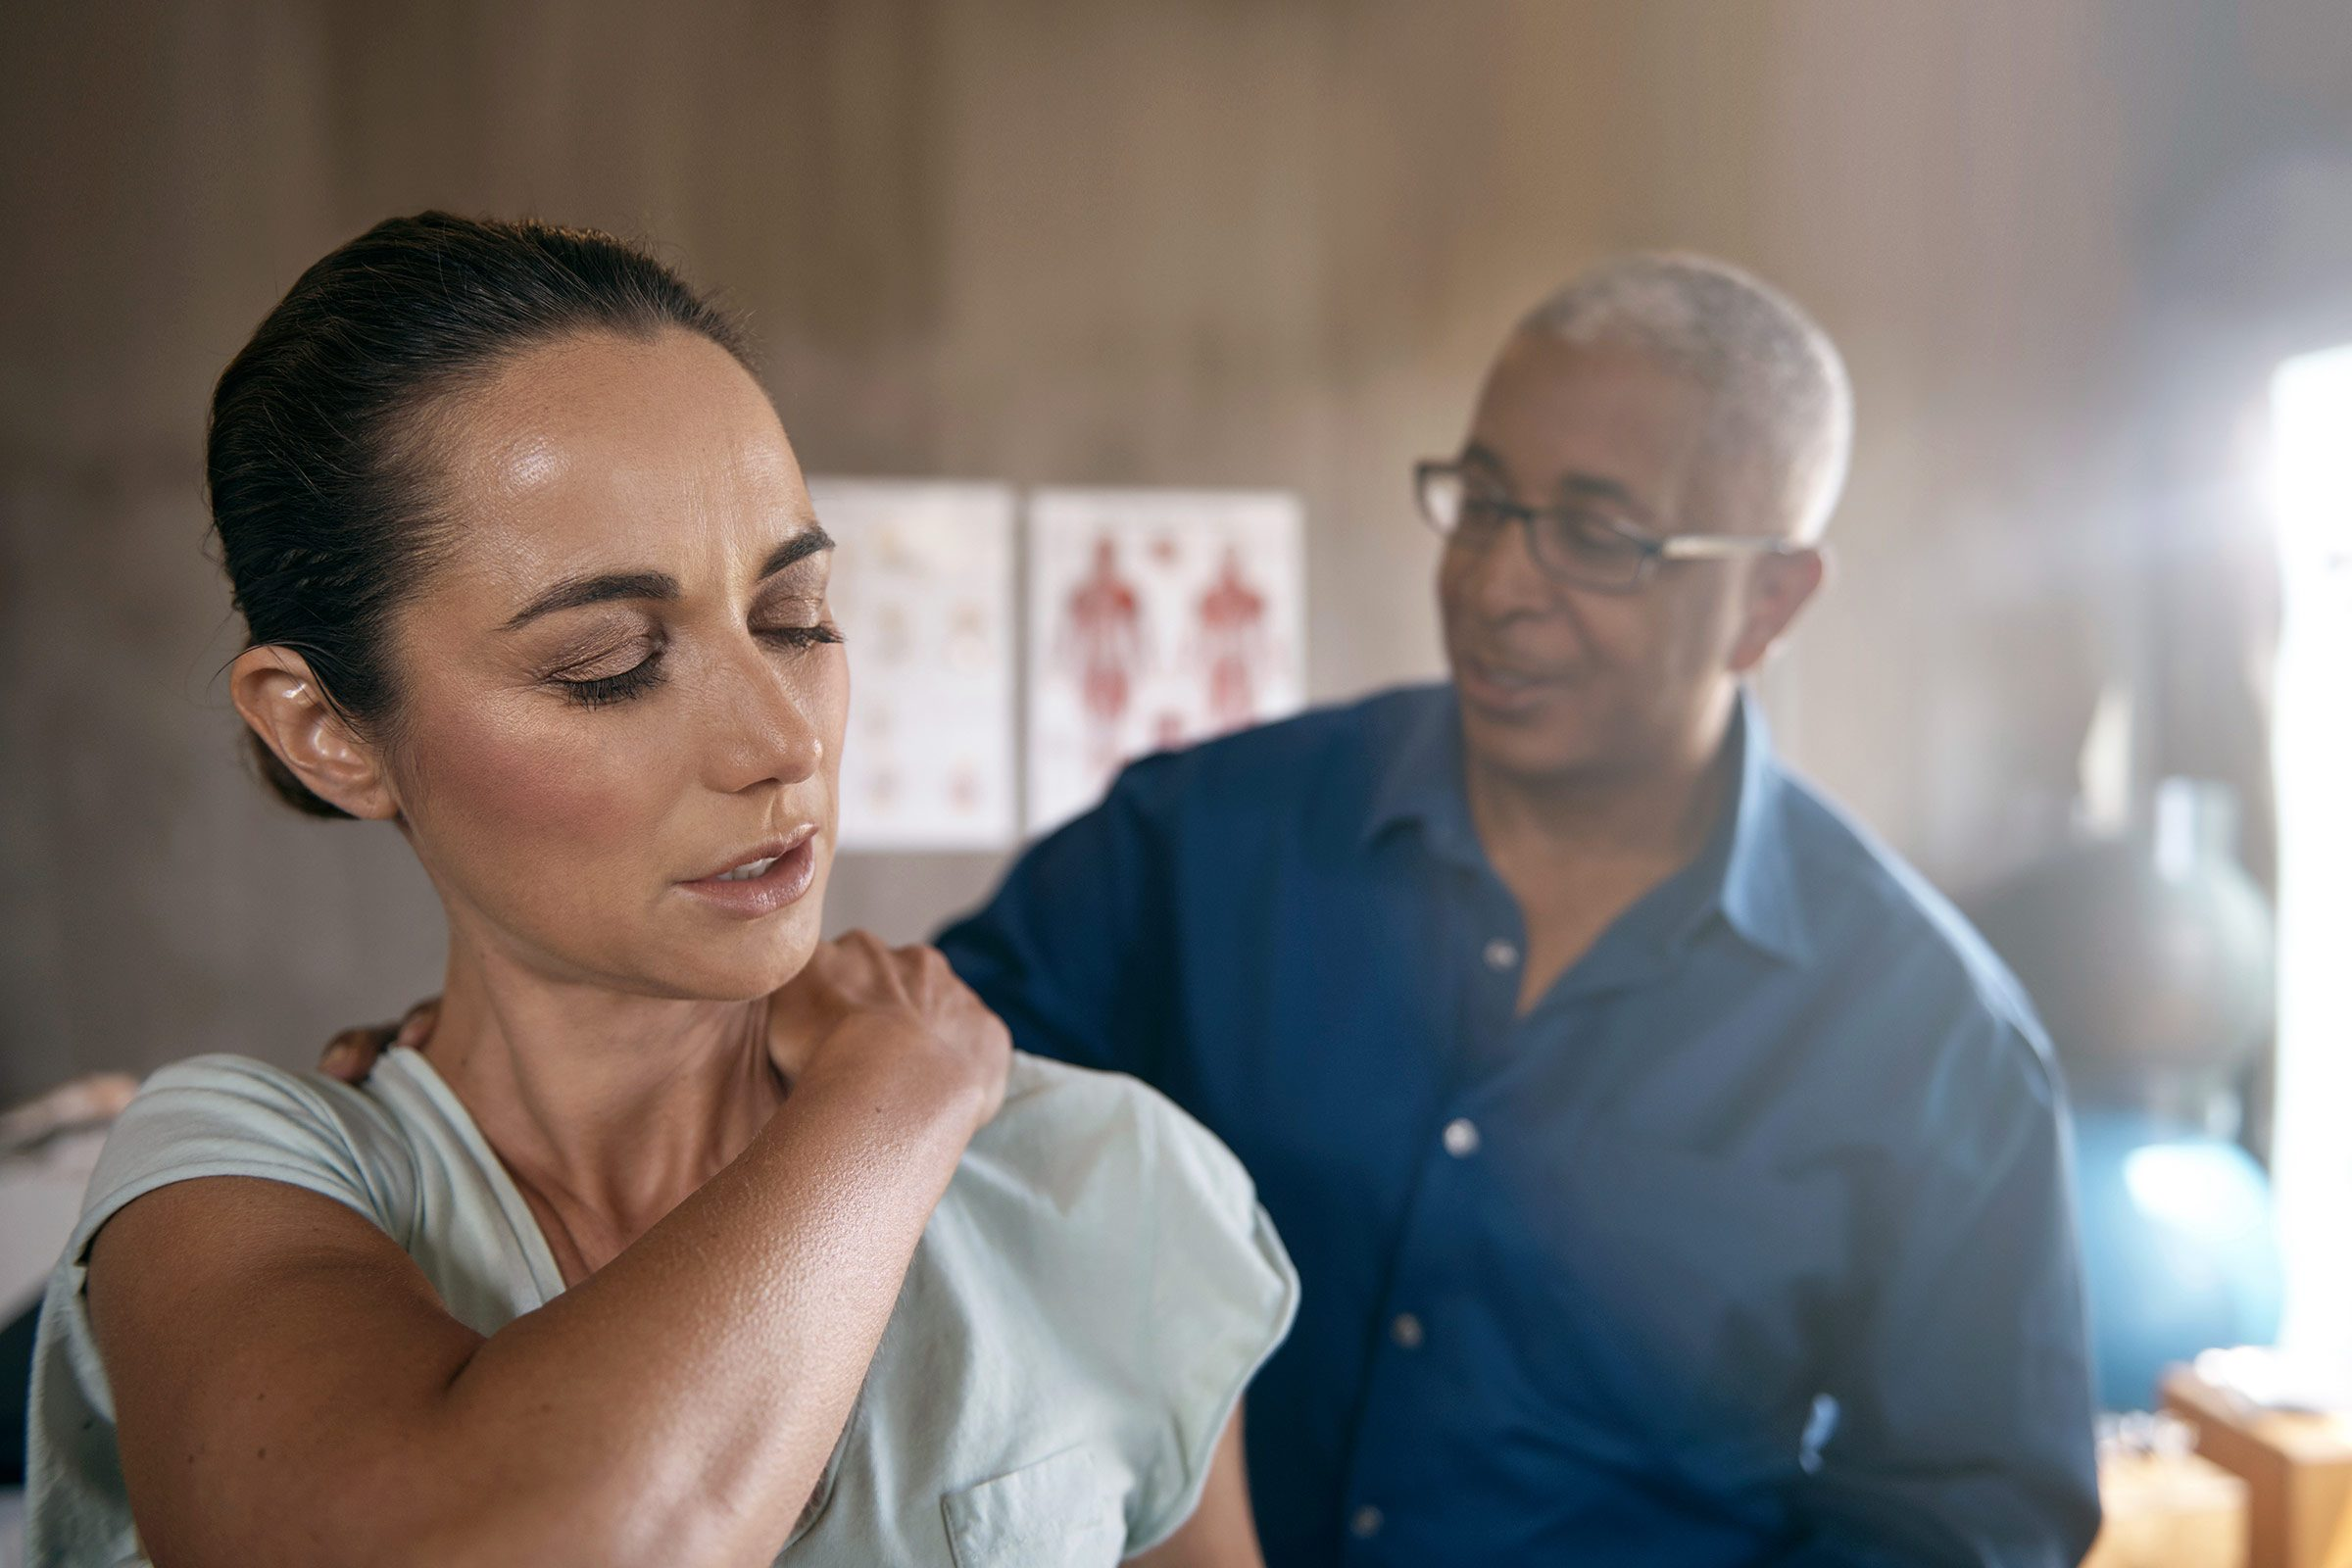 About physical therapy - When You Re Lying